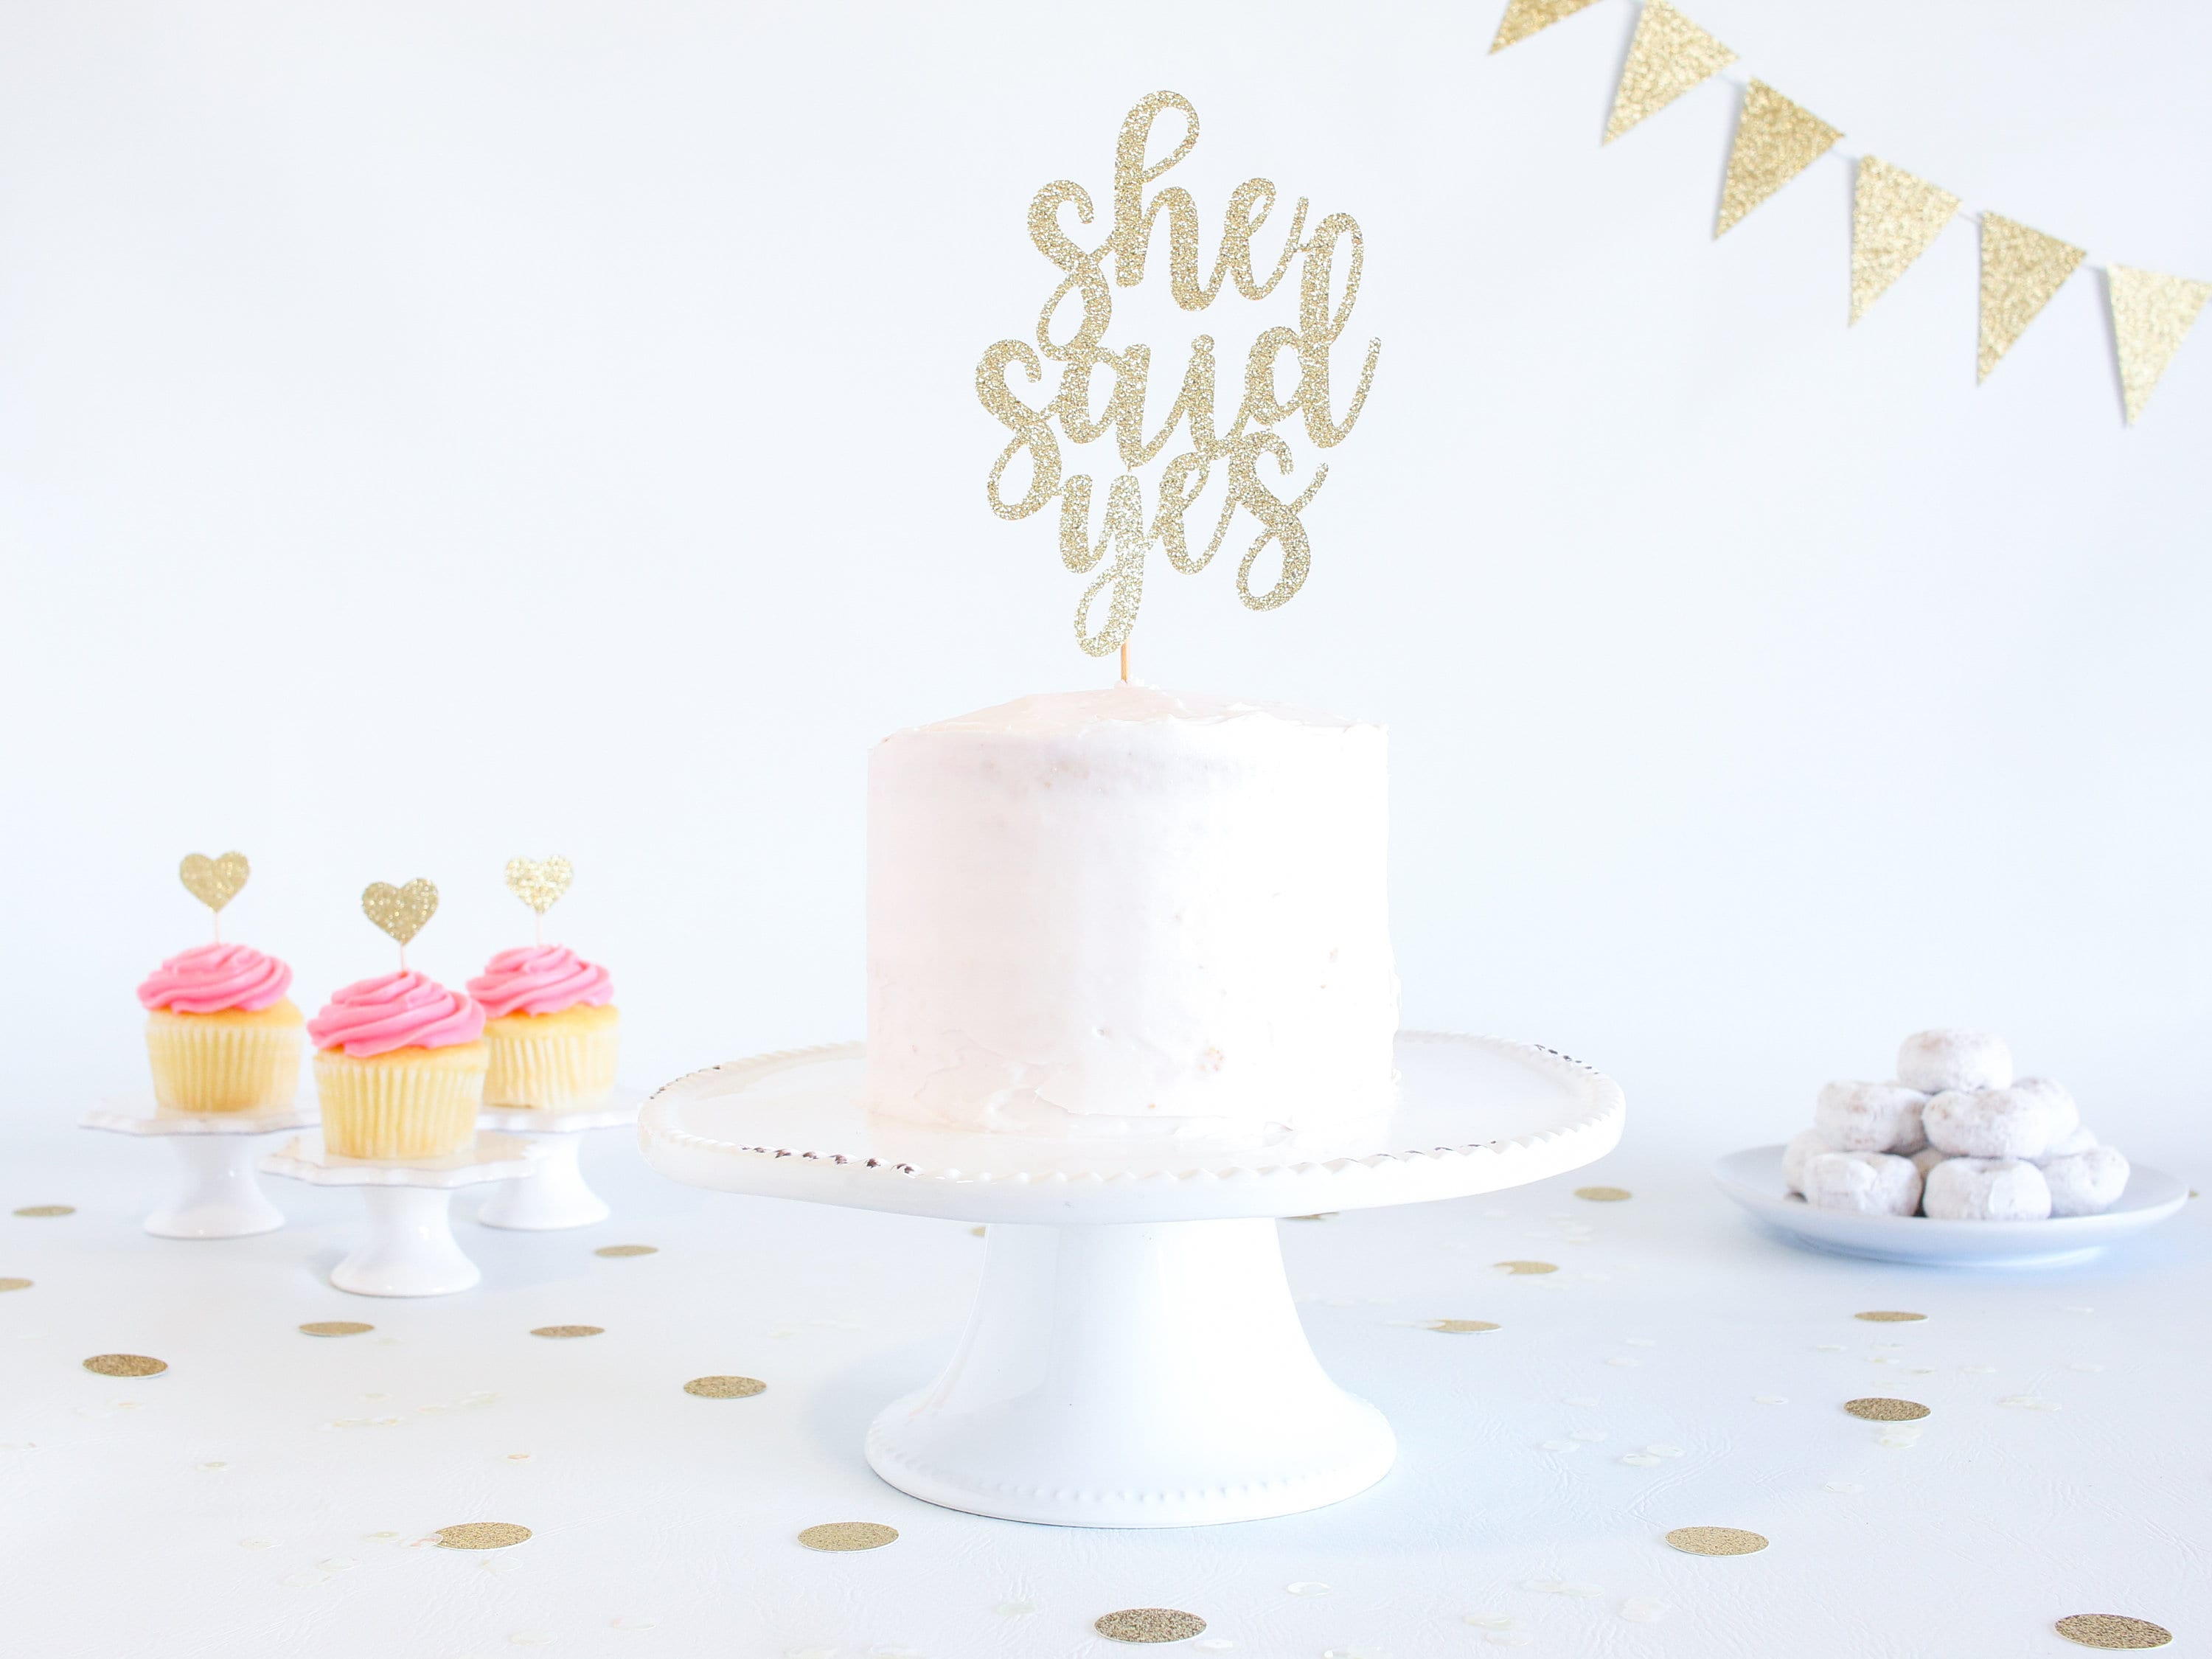 6afb750c040 She Said Yes Cake Topper - Glitter - Engagement Party. Bachelorette ...